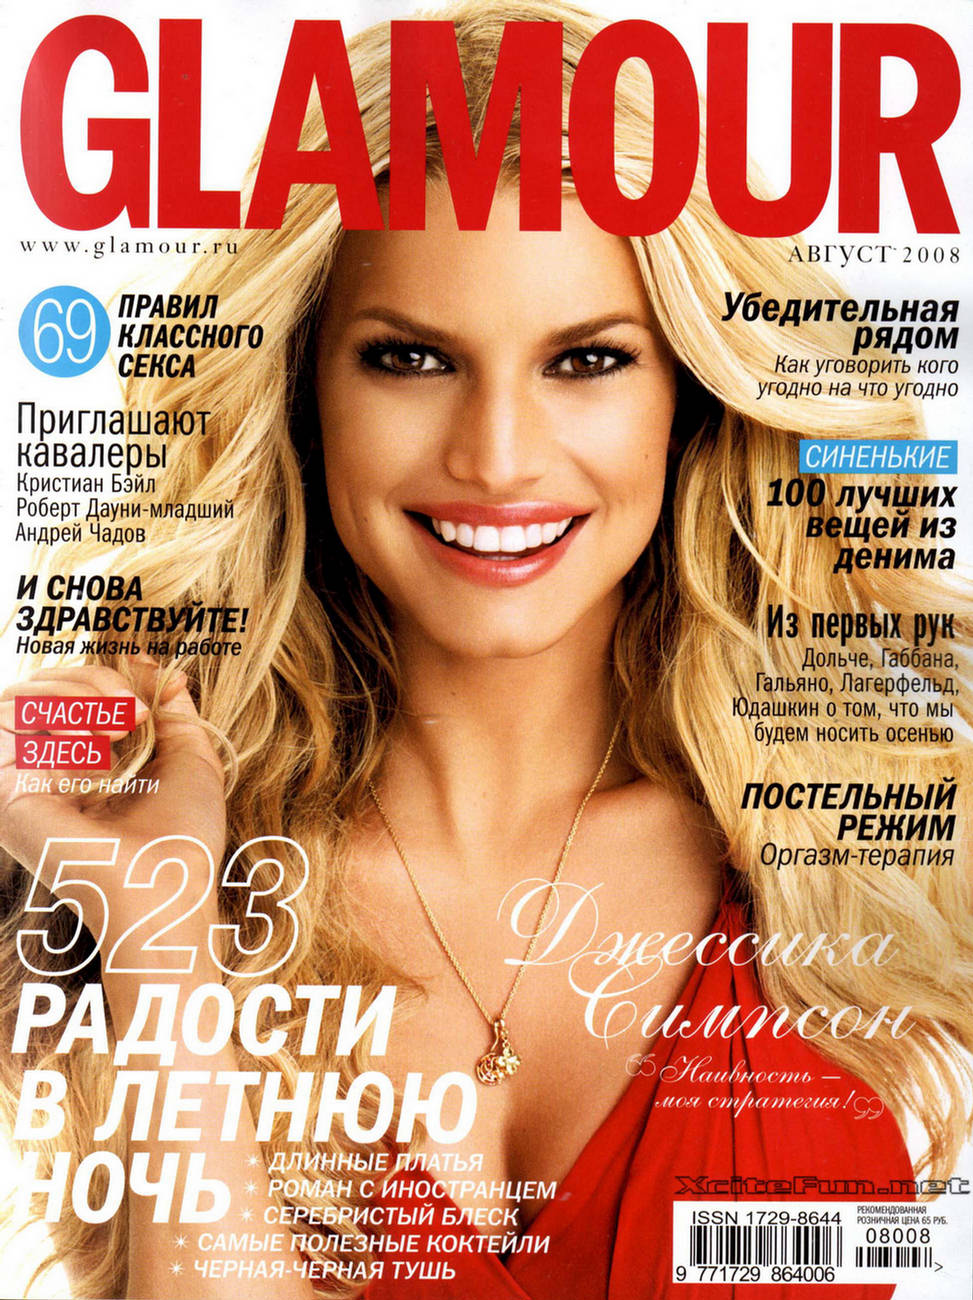 Cute Wallpapers Inspirational Jessica Simpson Photo Shoot For Glamour Magazine Aug 2008